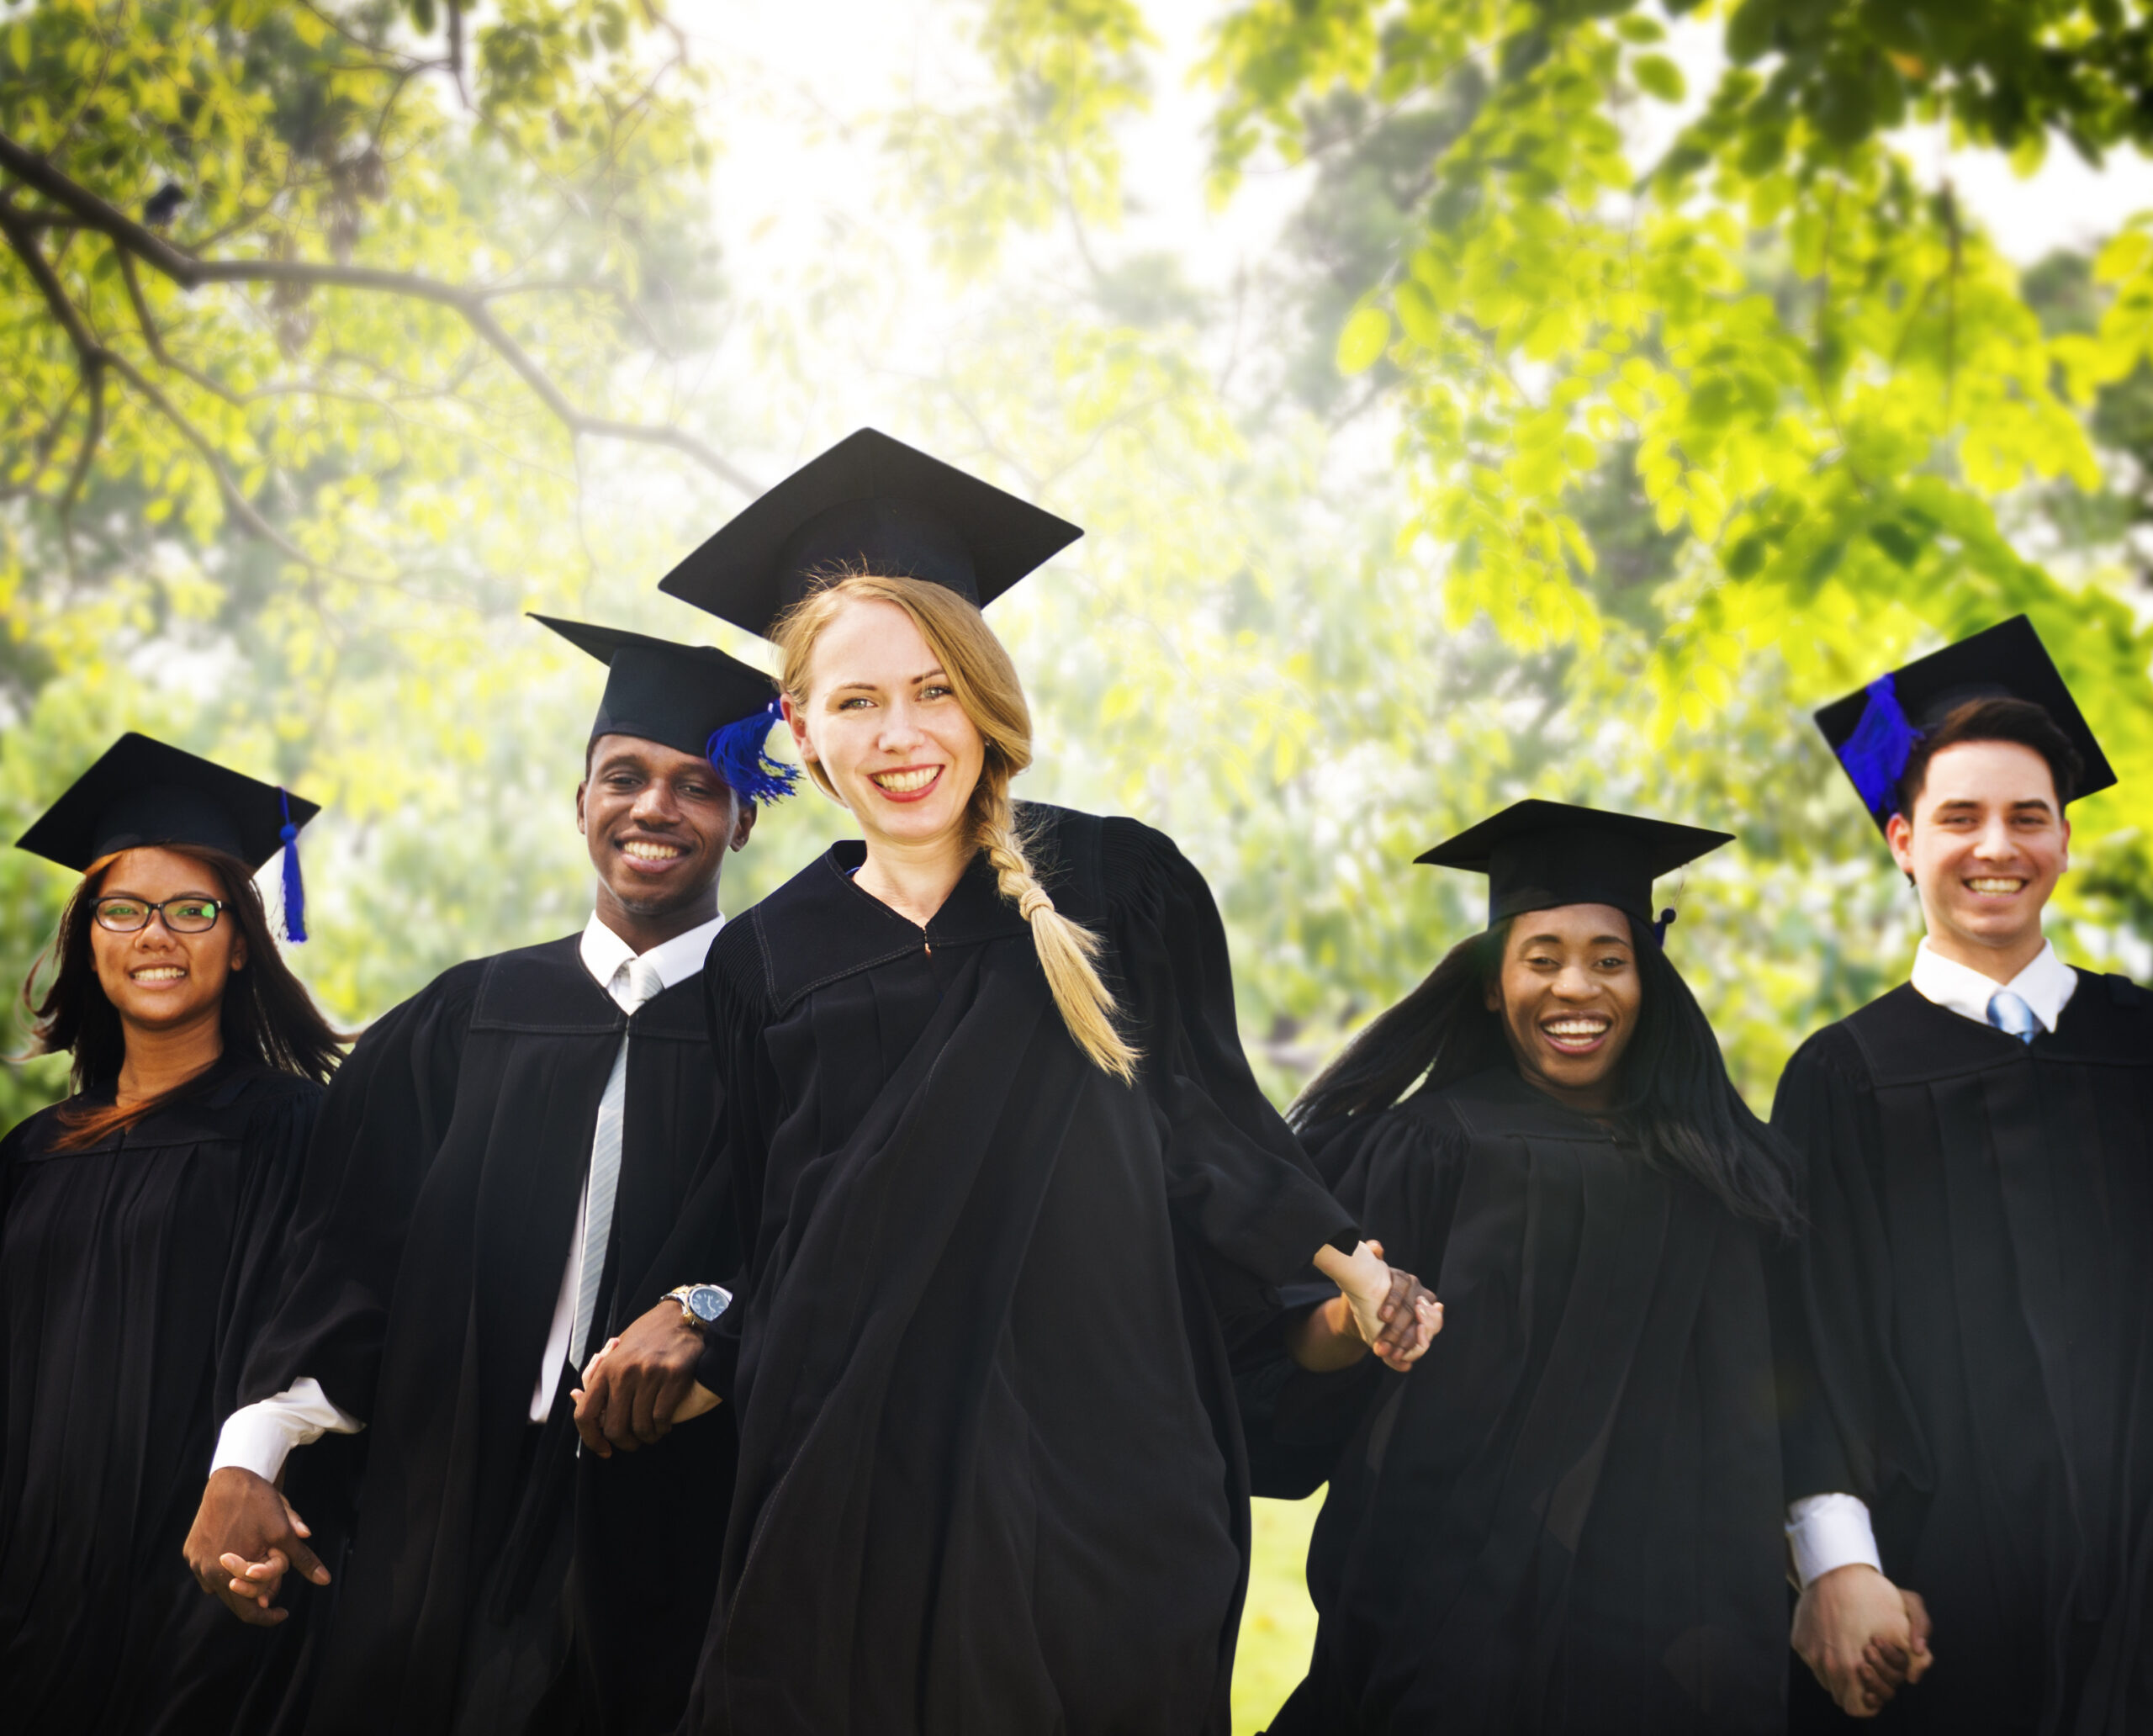 Happy Graduating Students in Caps and Gowns